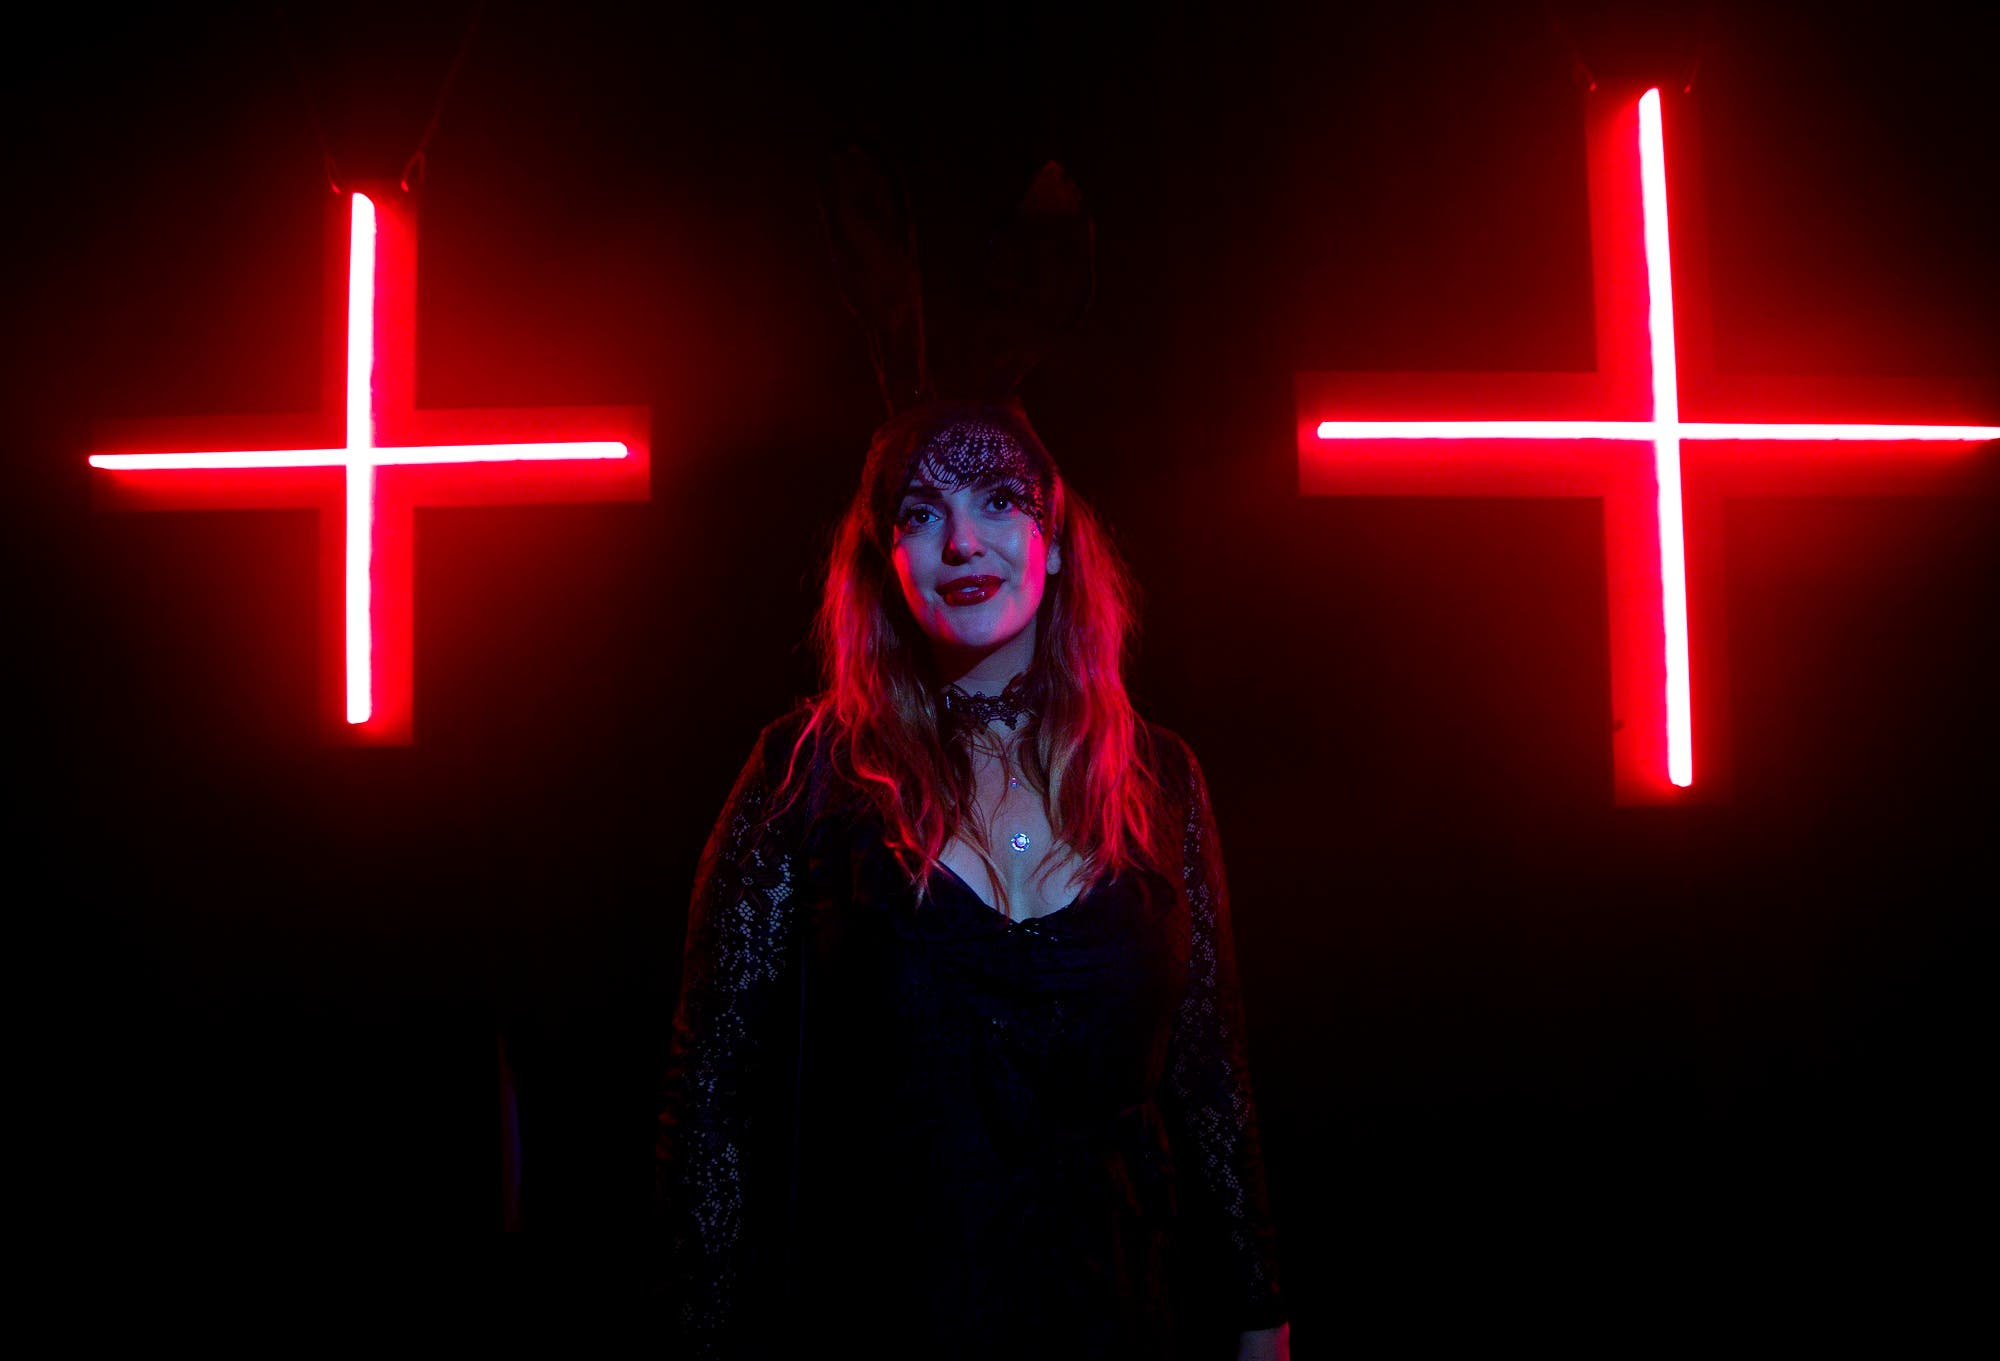 A girl stands in front of two red crosses at the entrance to the Red Bull Music Academy's event, as part of the Dark Mofo festival, in Hobart on June 18, 2017. (File photo: AP)